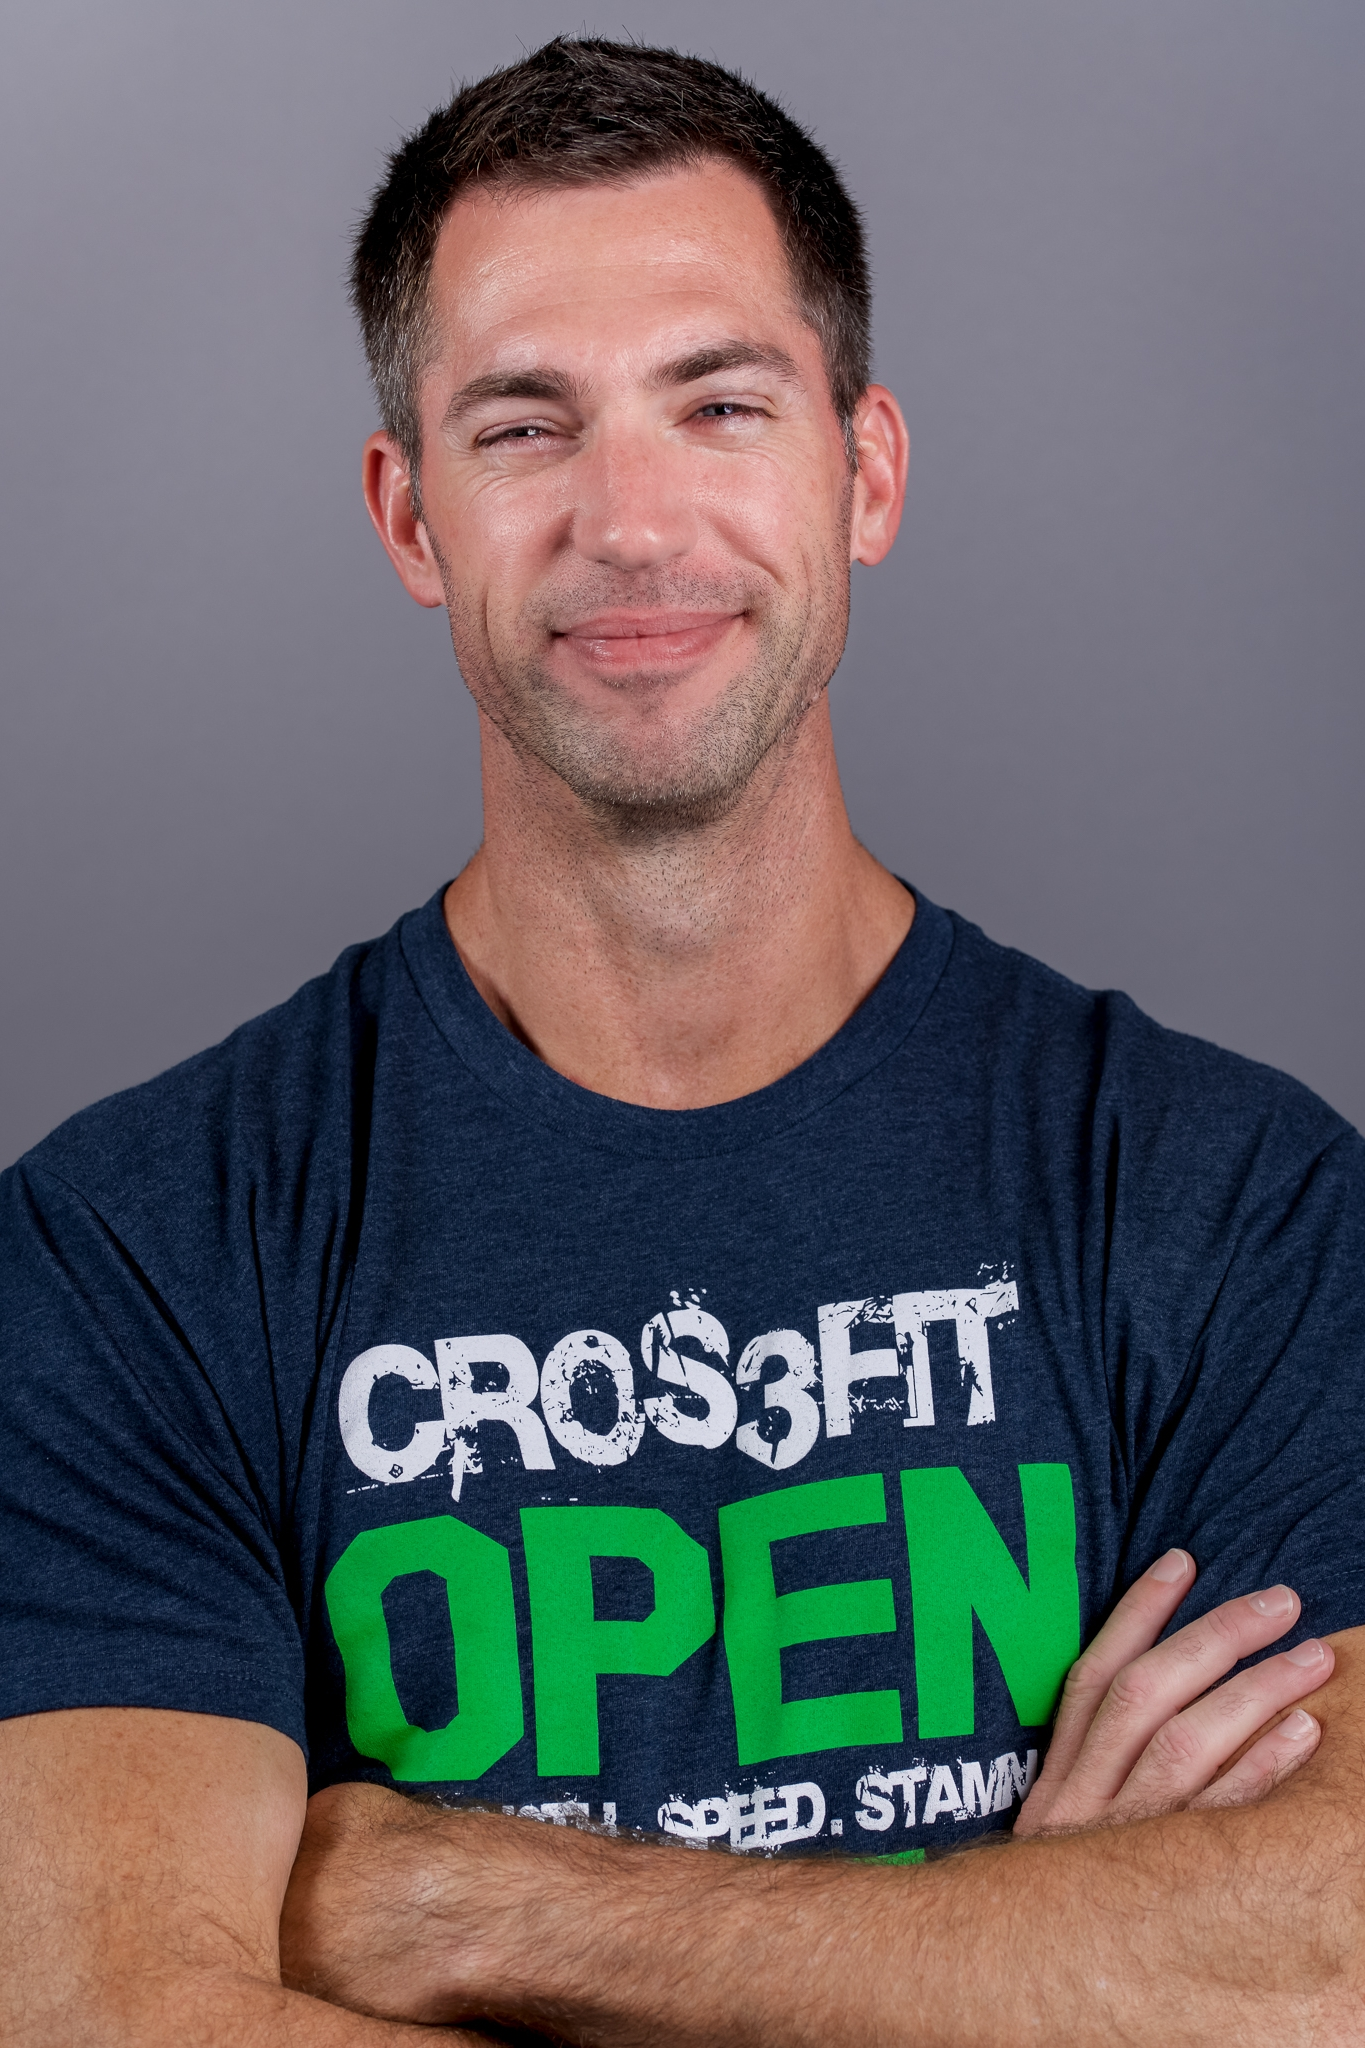 Sean Conneen, Owner   Sean purchased S3 on June 29, 2012 after he had been cross-fitting for two years. Sean has a love for community and family and treats all of the S3 members as such. He believes strongly that everyone should do CrossFit, no matter what they believe their athletic capabilities may be. Sean is a father of four to Brooke, Jack, Samantha and Daniel Brock. He works as the VP/GM of Toshiba, CMG and is a member at Forest Hill. His favorite part of being an owner is the ability to use S3 as a platform to give back to multiple non-profit organizations.